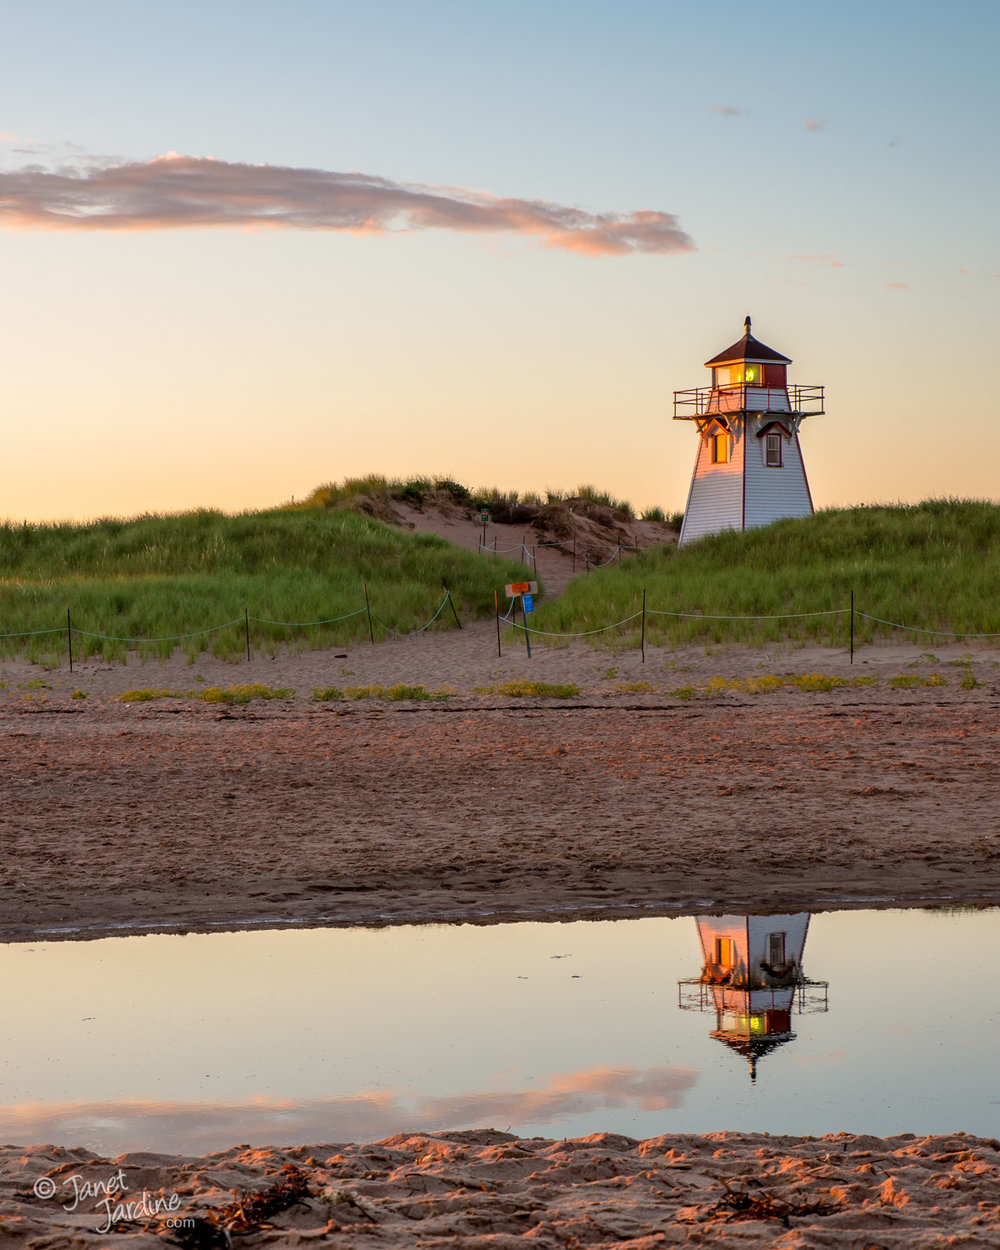 Covehead-Harbour-Lighthouse-at-Daybreak_Photo_copyright_Janet_Jardine_SquareSpace.jpg